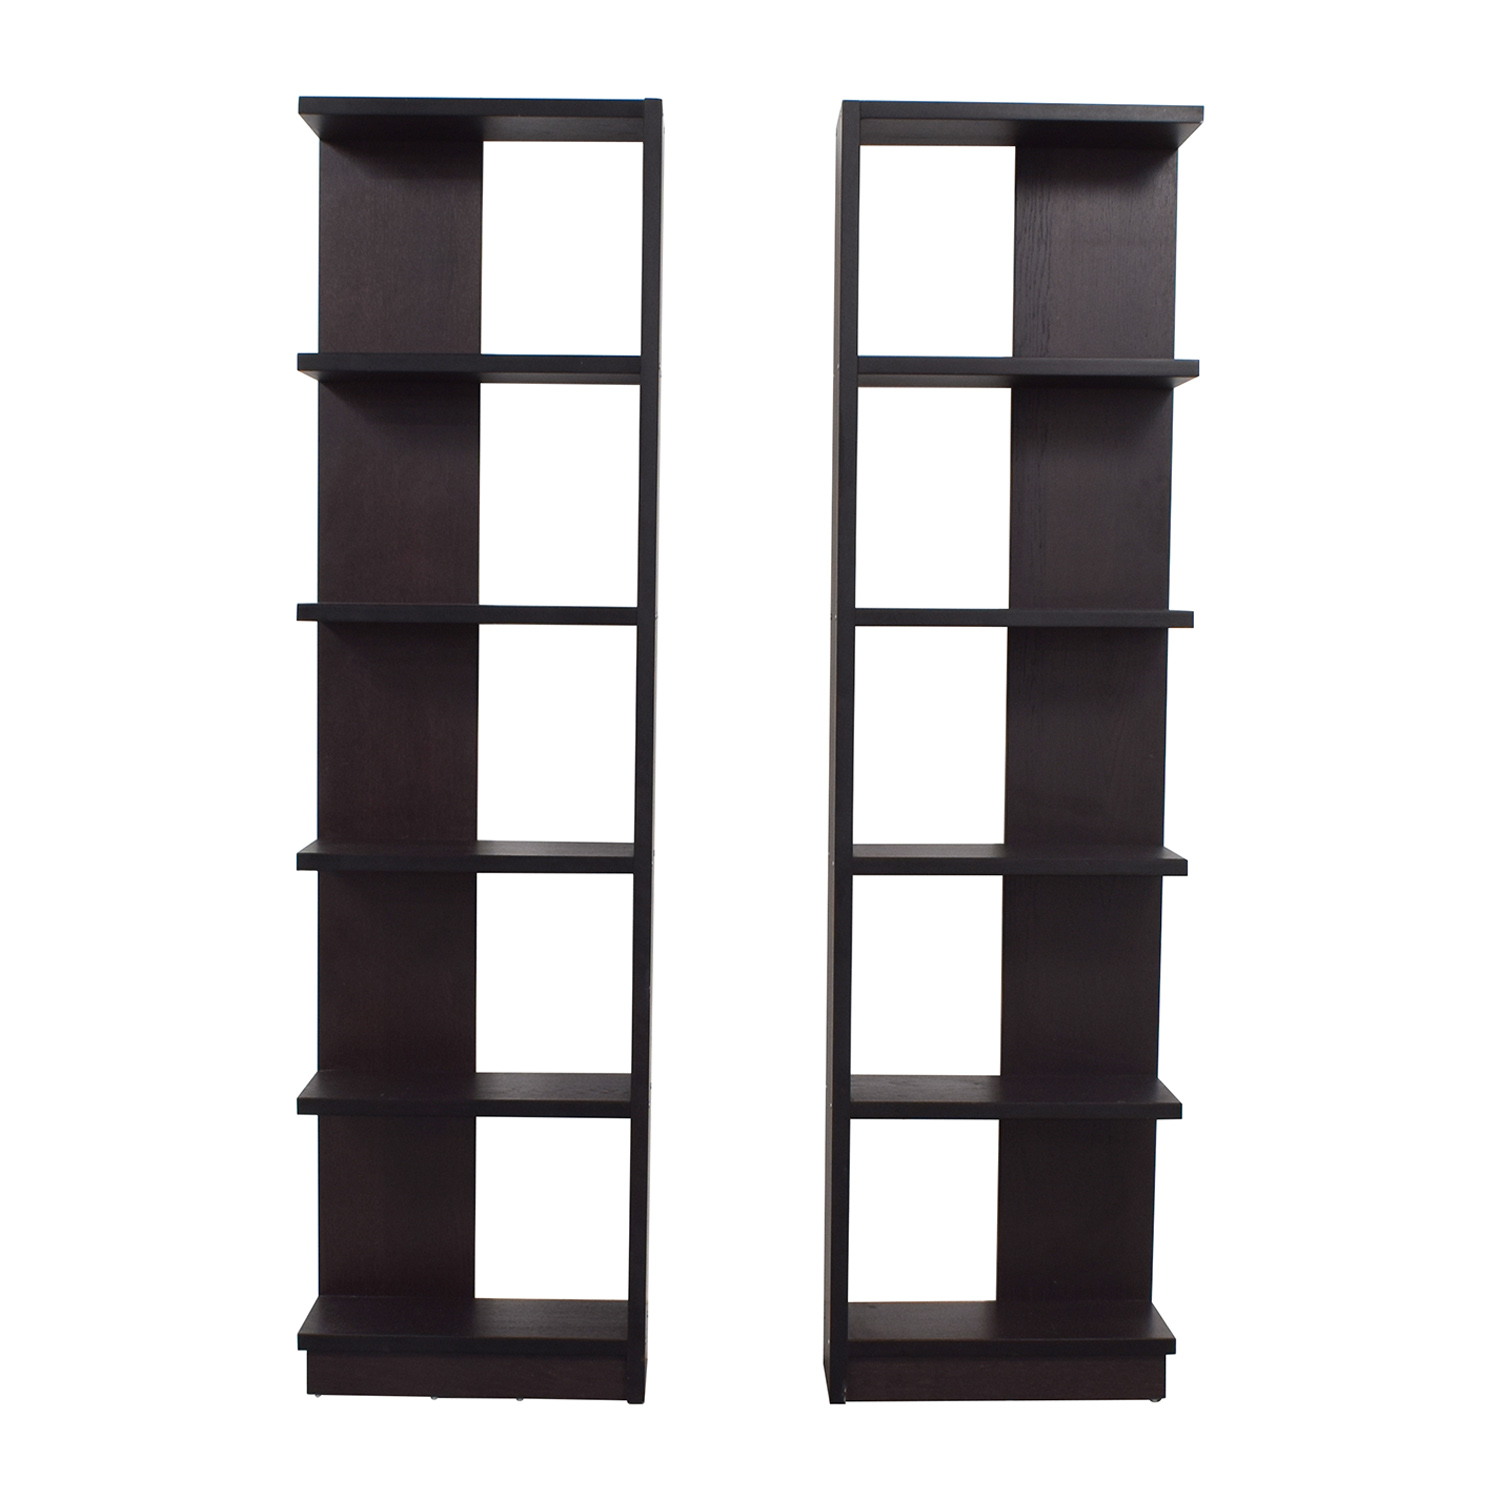 Crate & Barrel Crate & Barrel Elements Reversible Wood Bookcases on sale